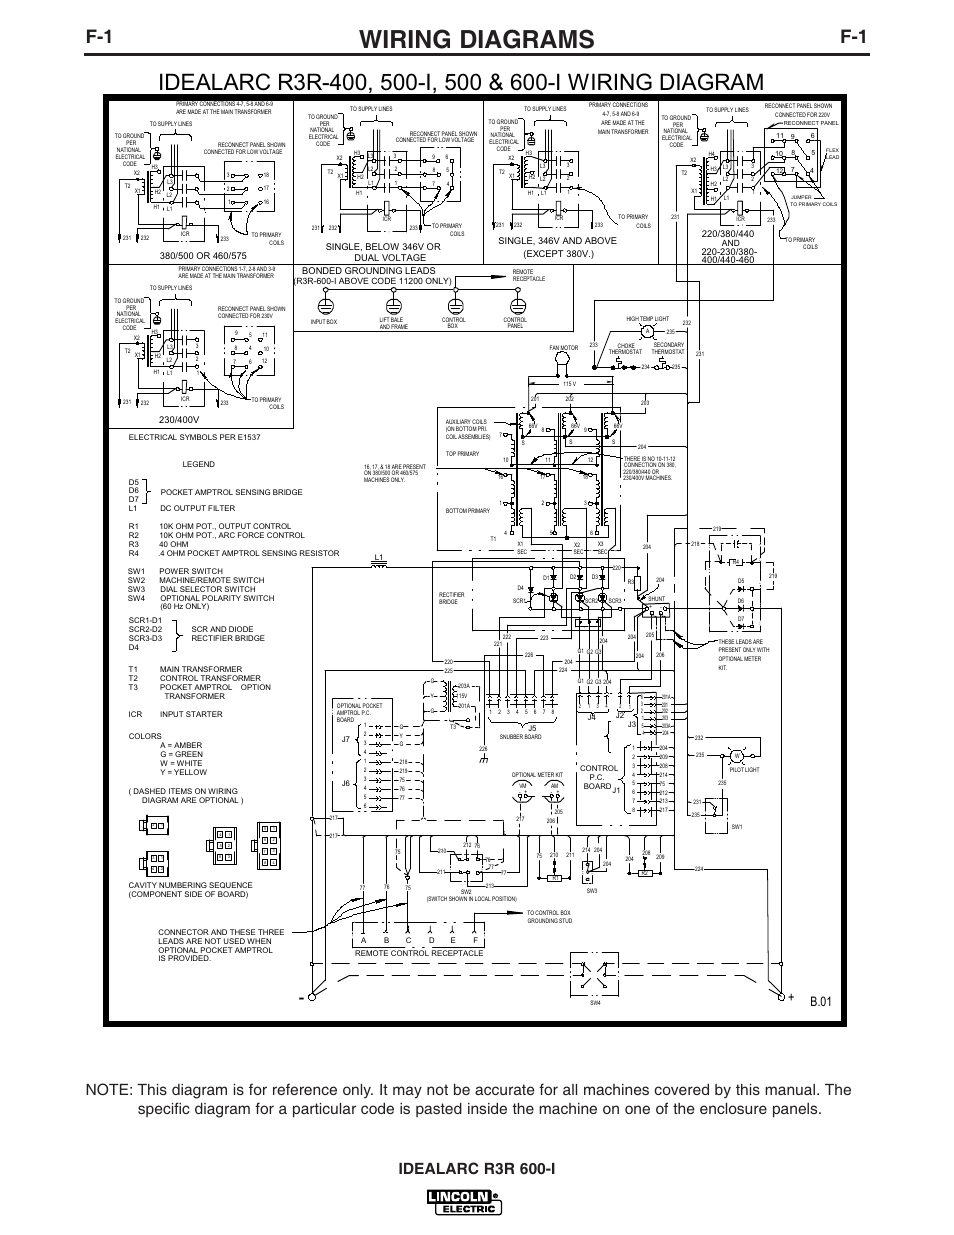 lincoln electric idealarc r3r 600 i page24 wiring diagrams, l9376, b 01 lincoln electric idealarc r3r 600 i Boat Wiring Diagram for Dummies at readyjetset.co